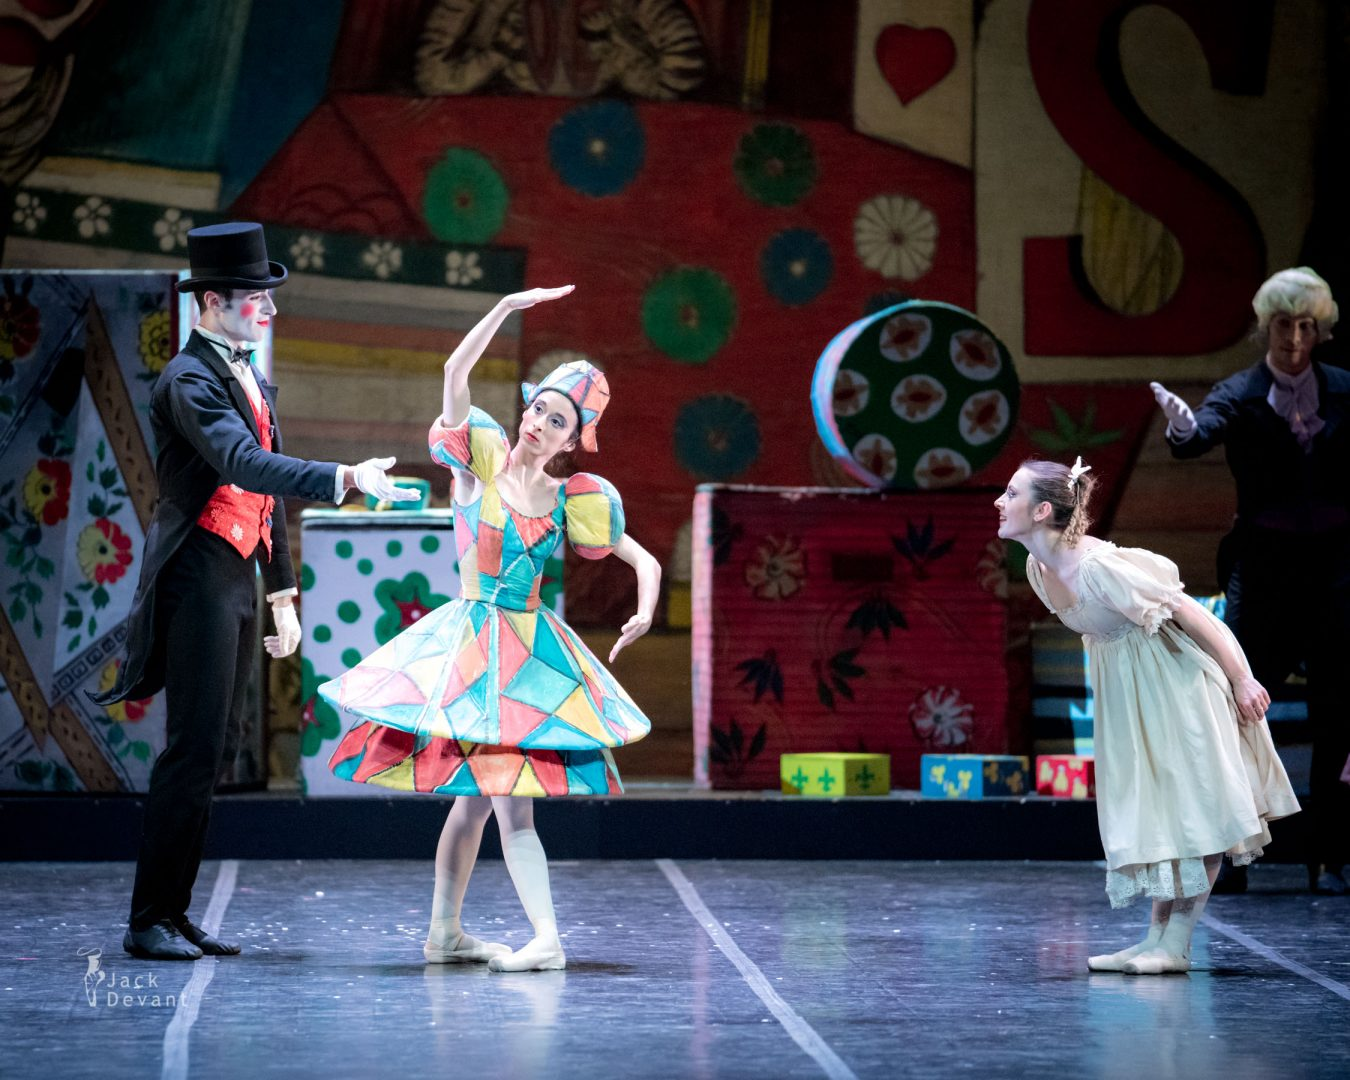 Valerio Polverari as Drosselmeier Elisa Aquilani as Arlecchina in The Nutcracker (Schiaccianoci)